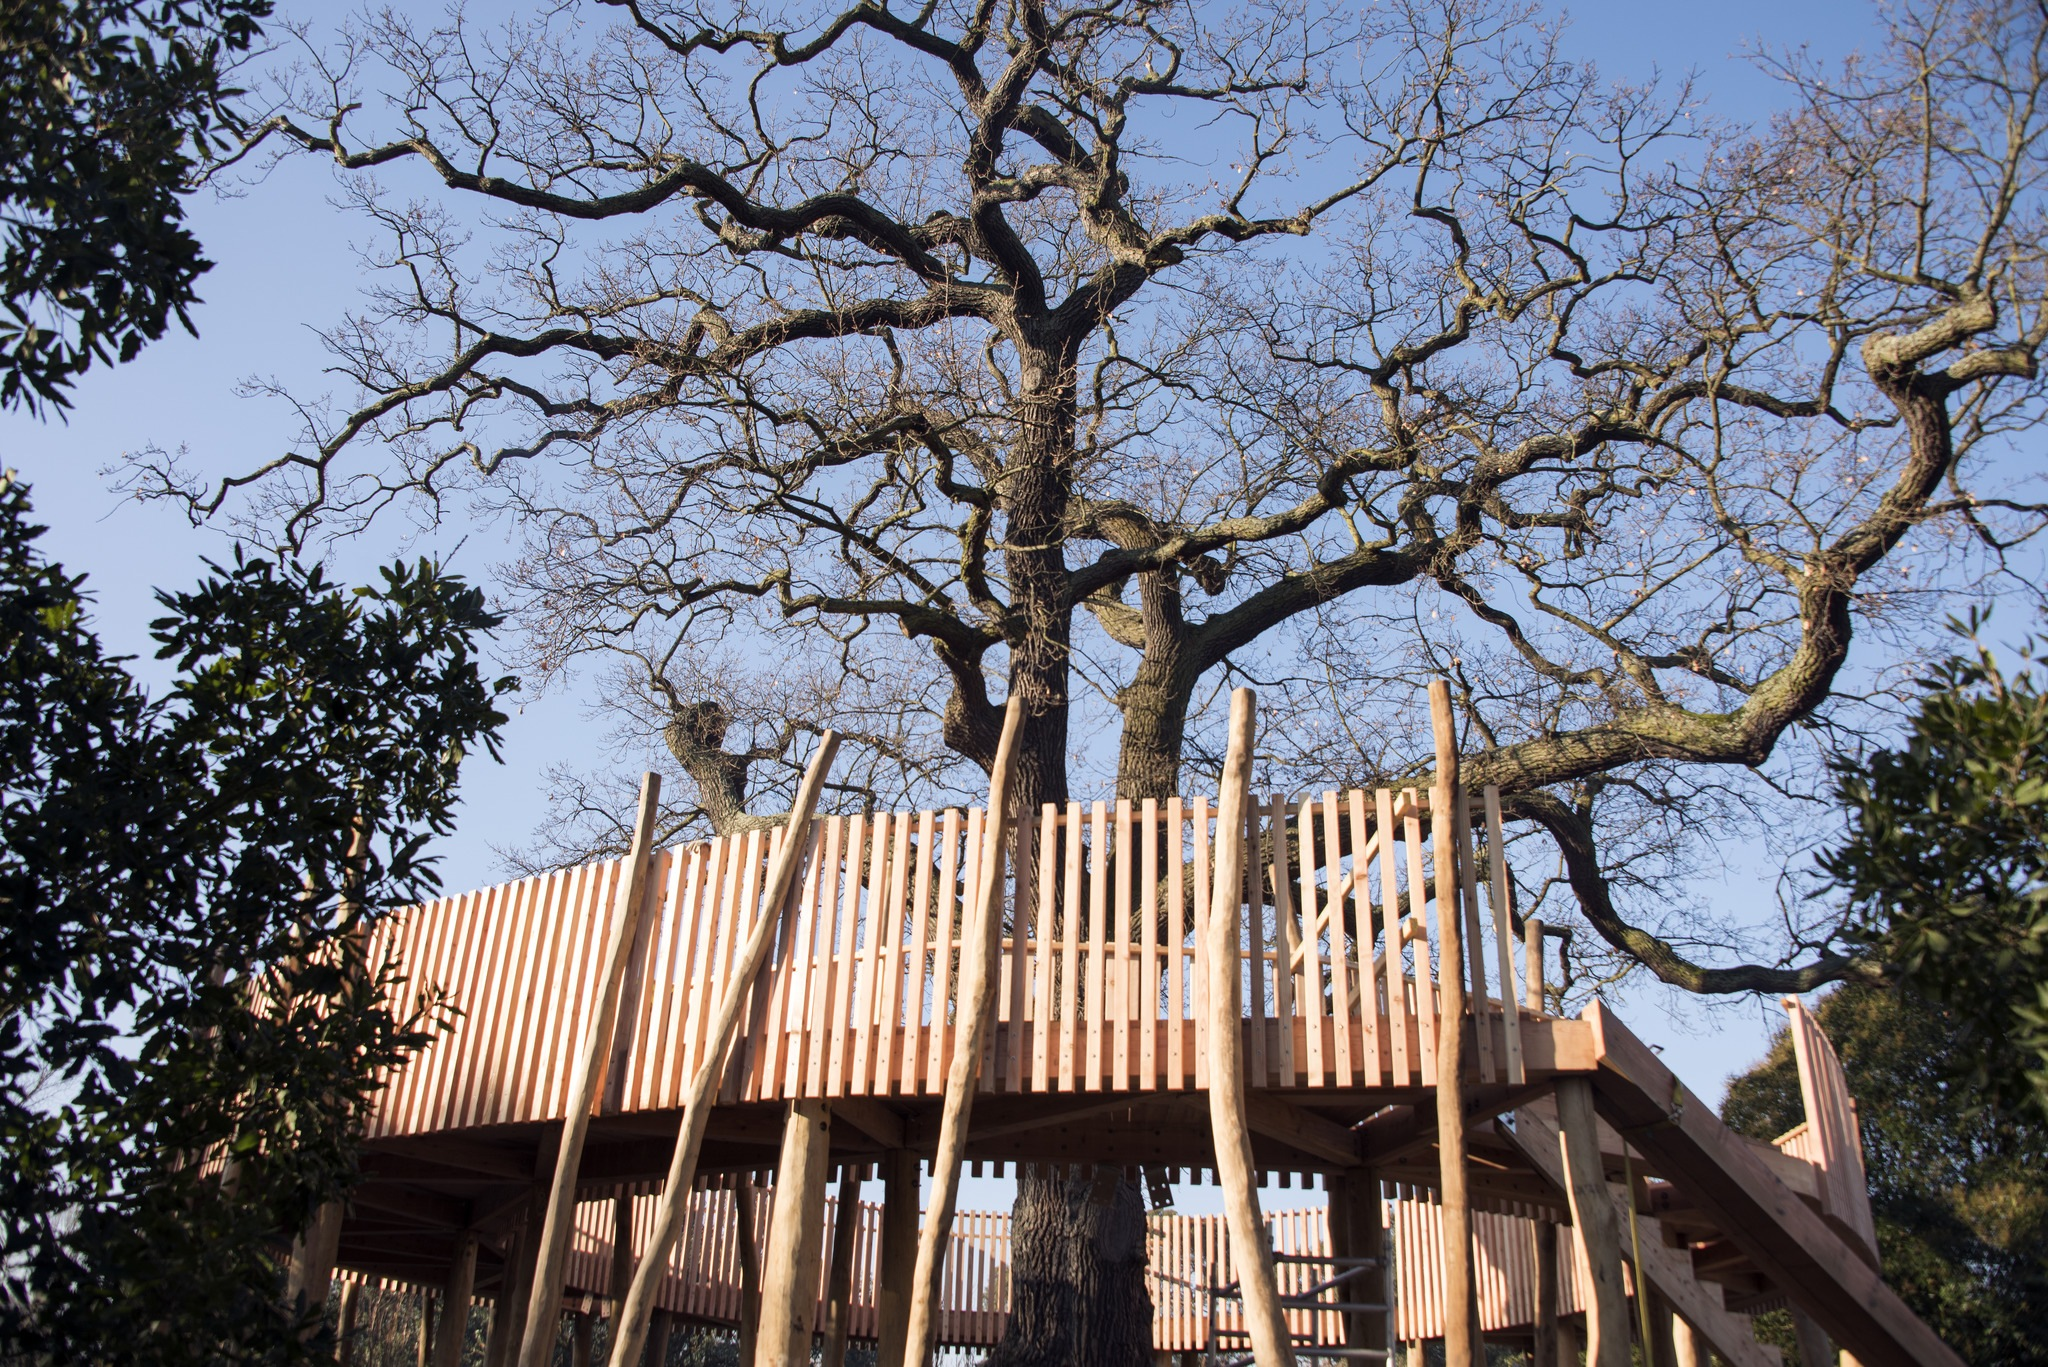 The treetop walkway that encompasses our oldest oak tree